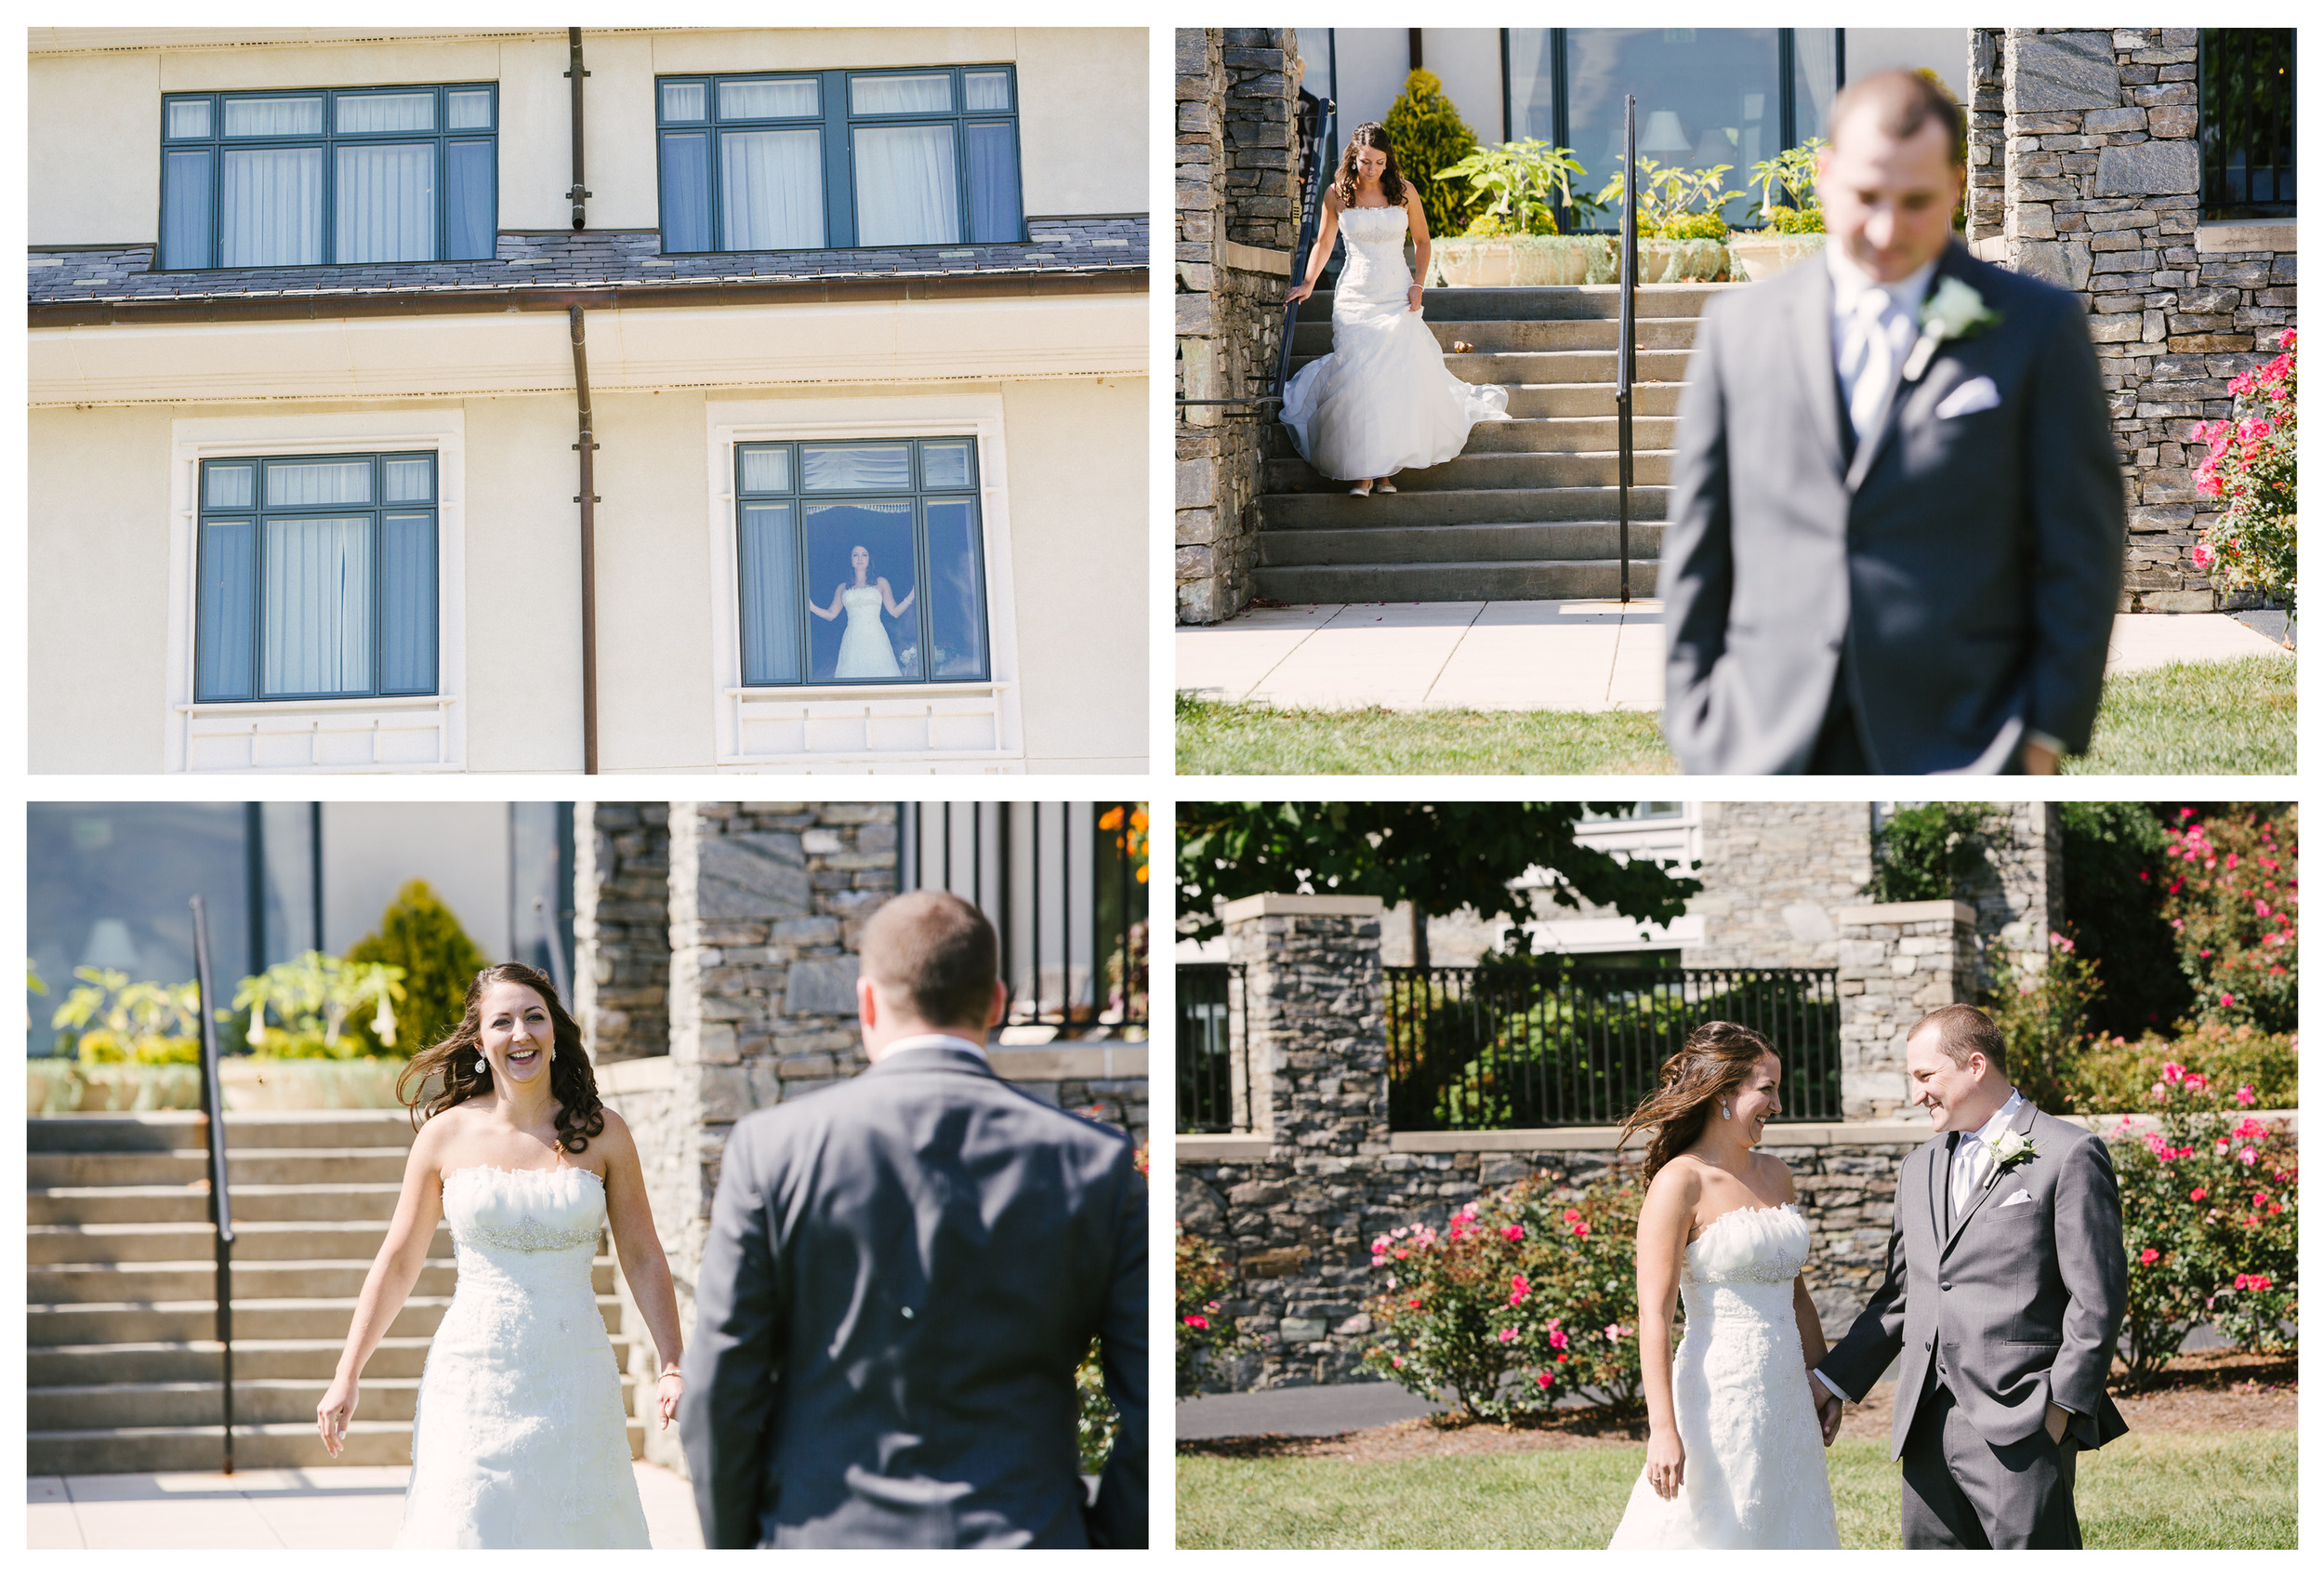 Biltmore Estate Wedding - First Look